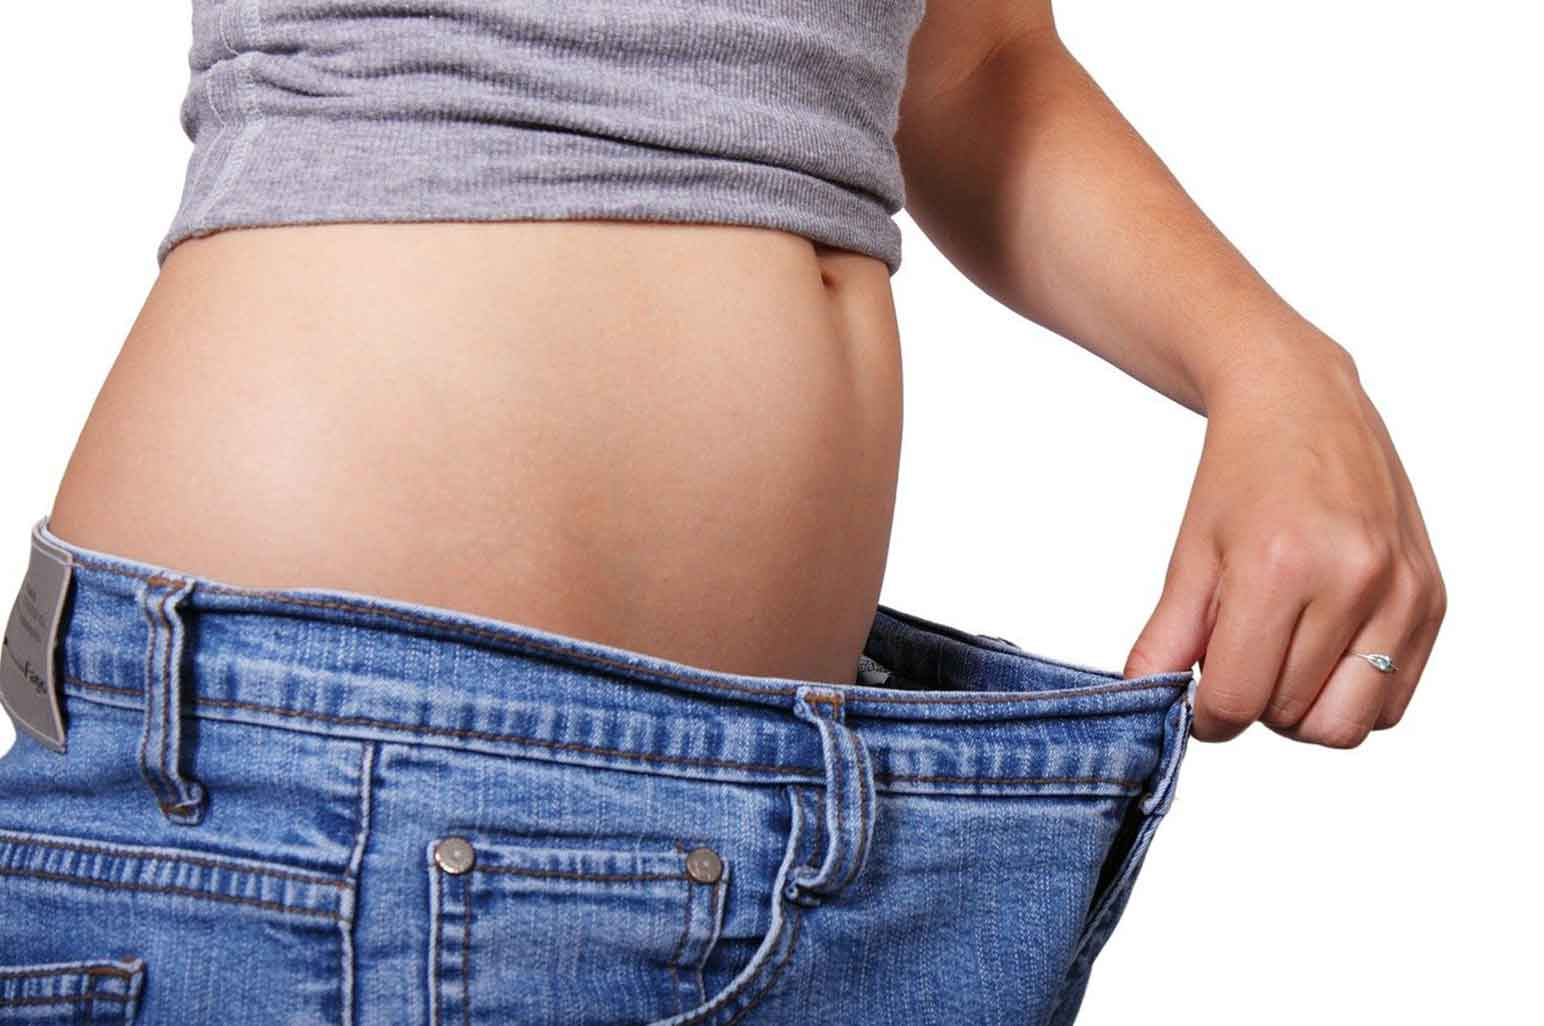 Weight Loss Surgery: Are There Any Risks?